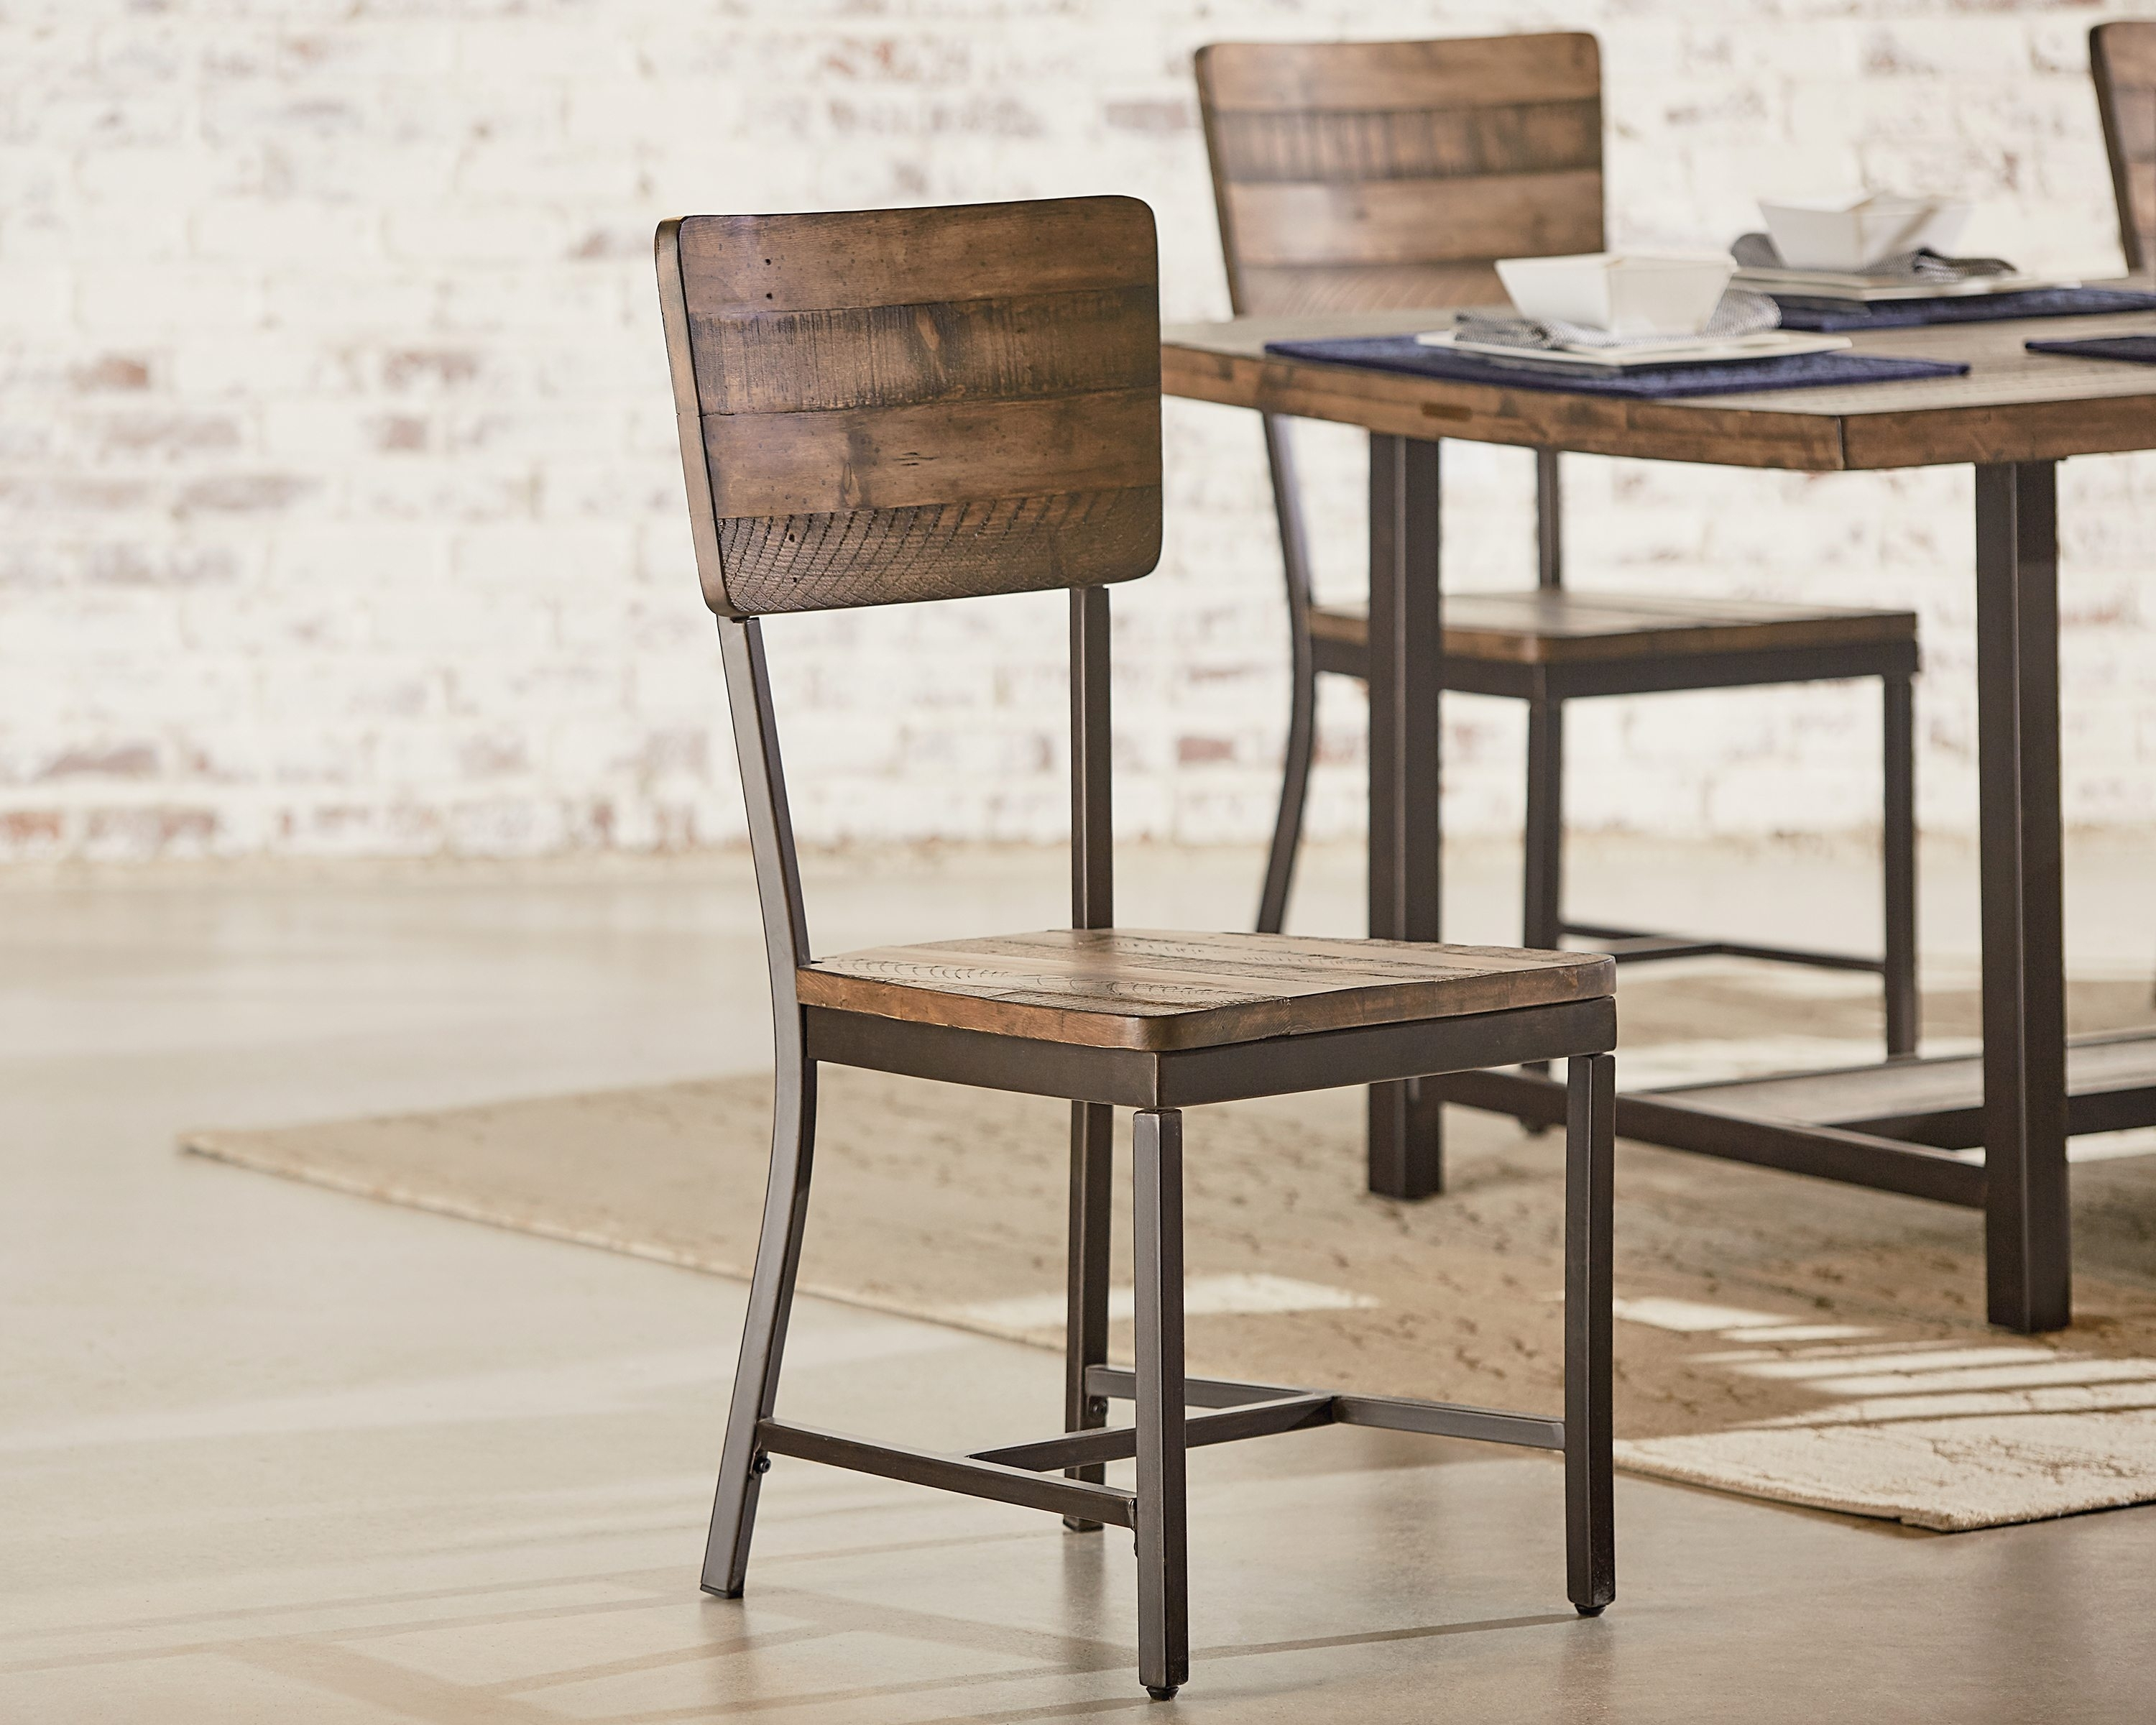 Inspiration about Well Known Magnolia Home Contour Milk Crate Side Chairs With Contour Side Chair – Magnolia Home (#3 of 20)